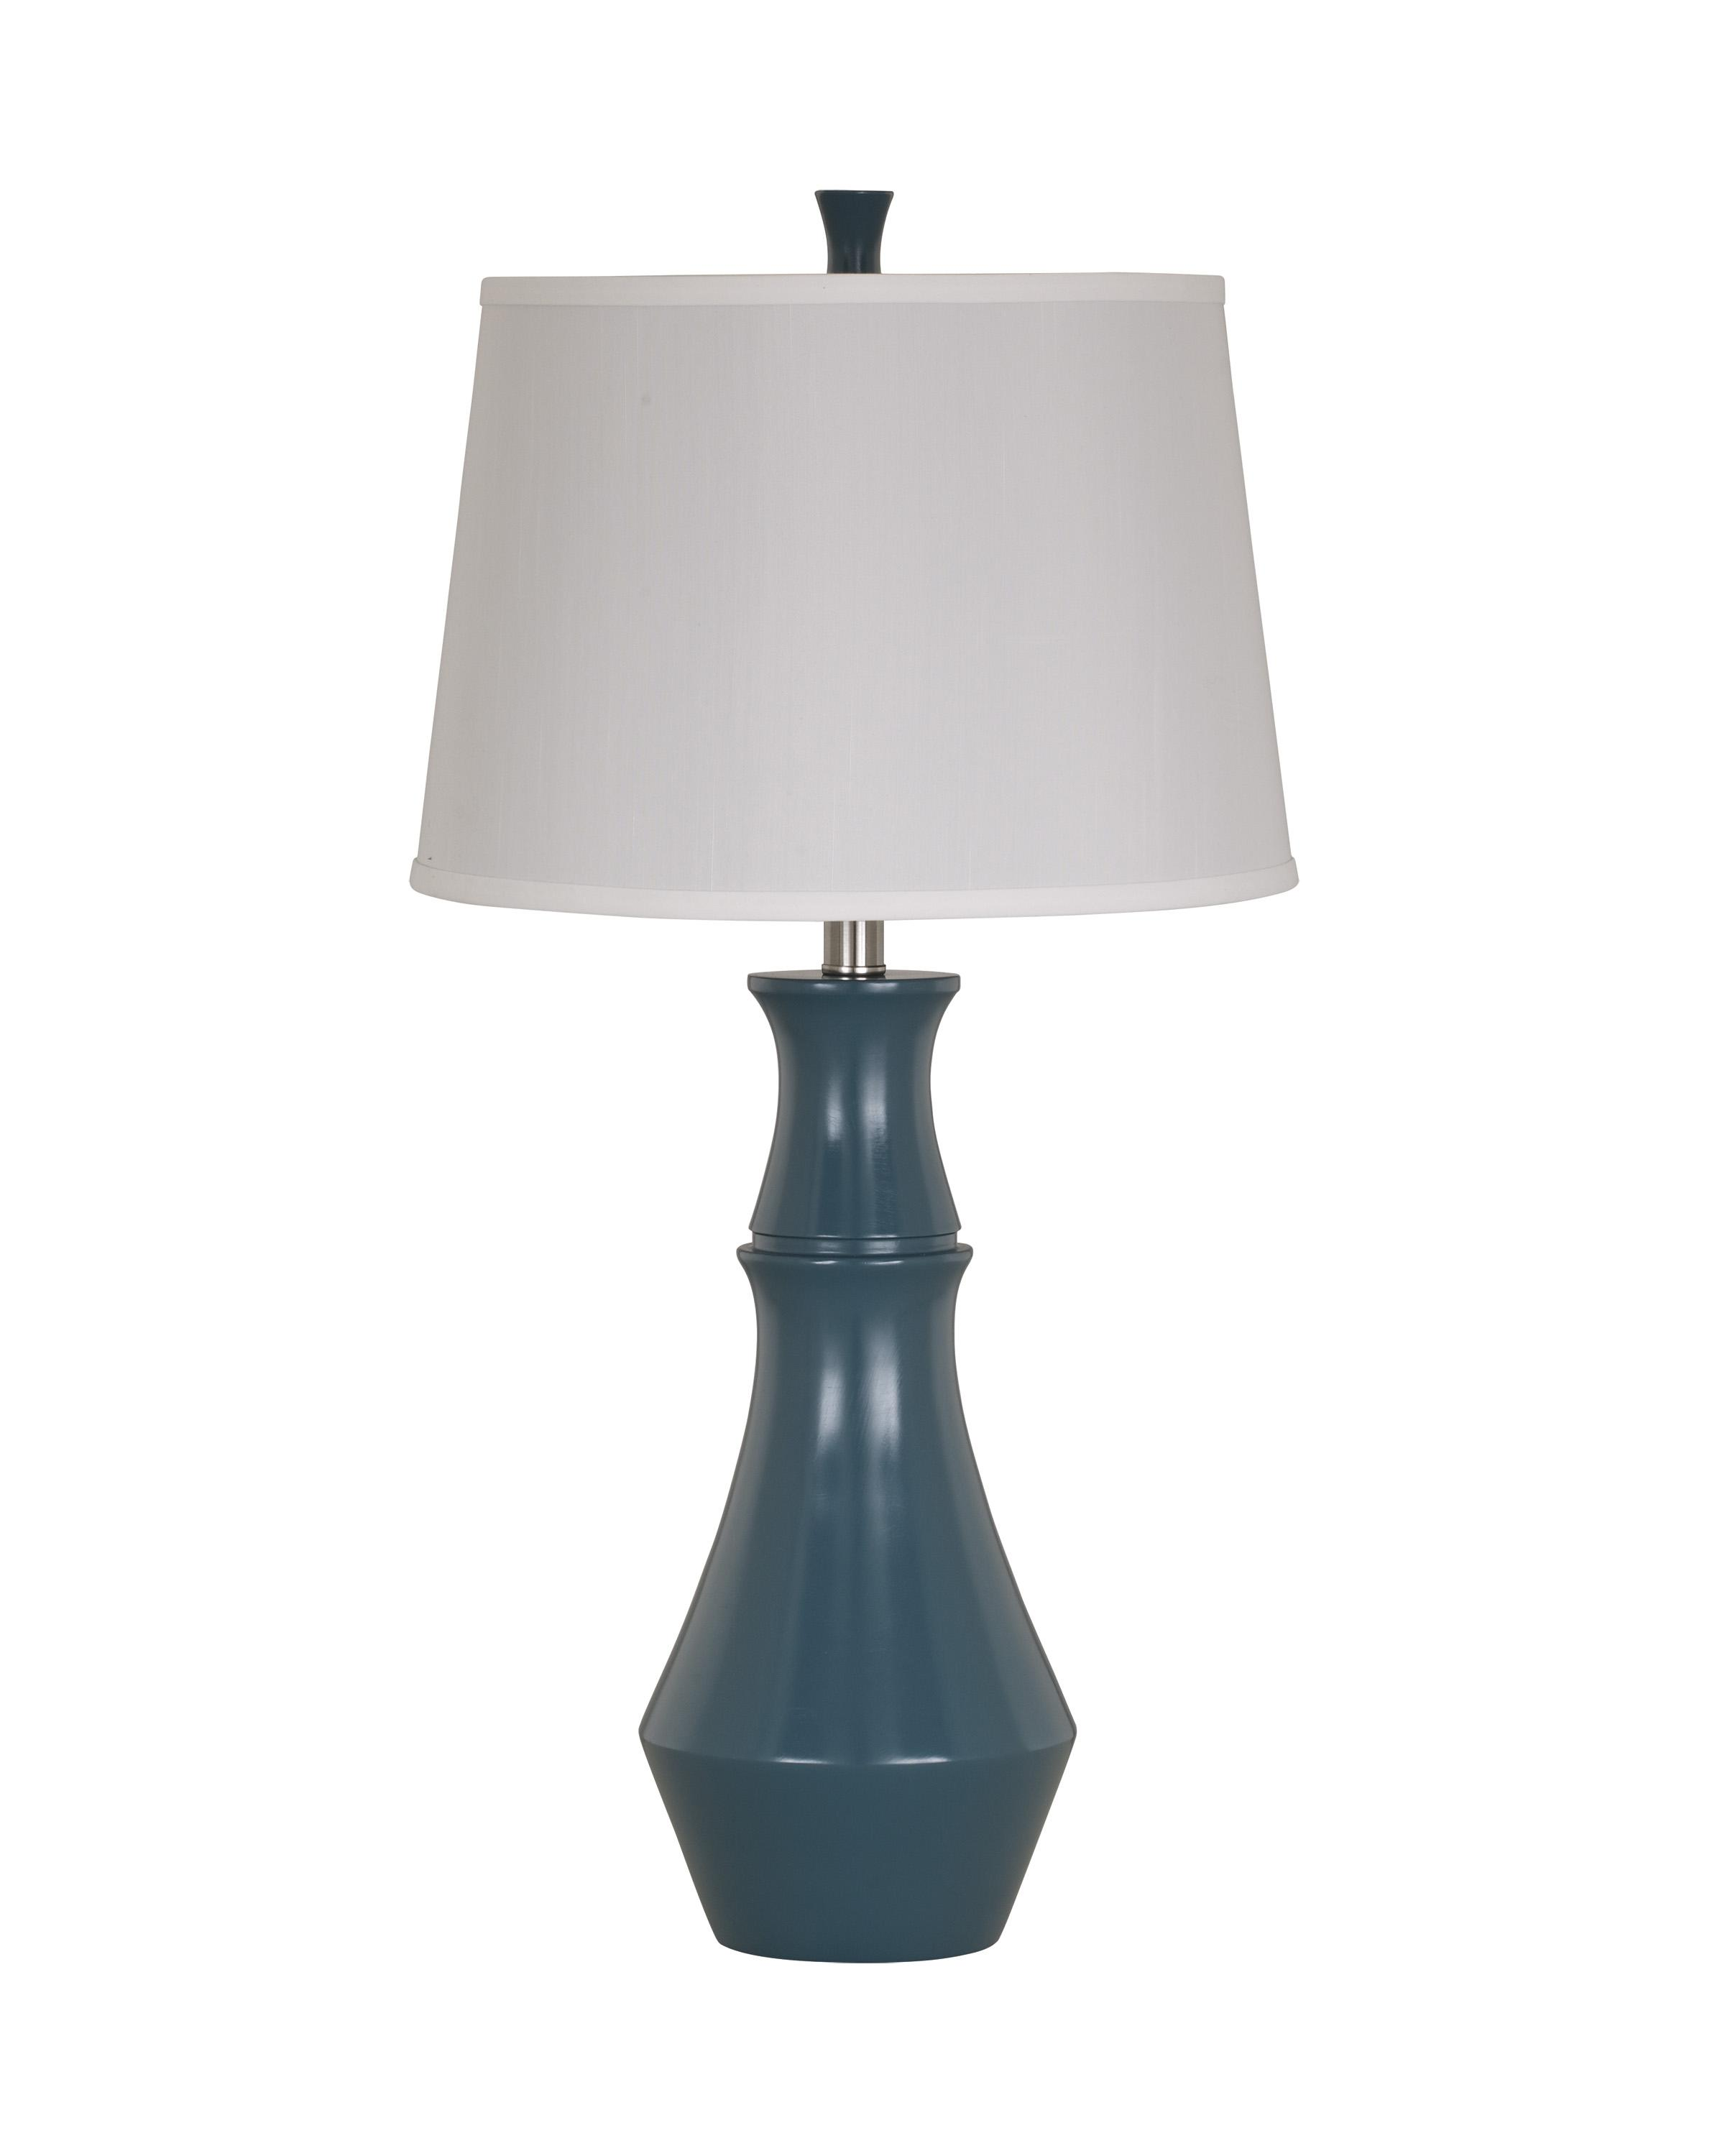 Lamps - Contemporary Set of 2 Sirilla Blue Poly Table Lamps by Ashley Furniture Signature Design at Del Sol Furniture